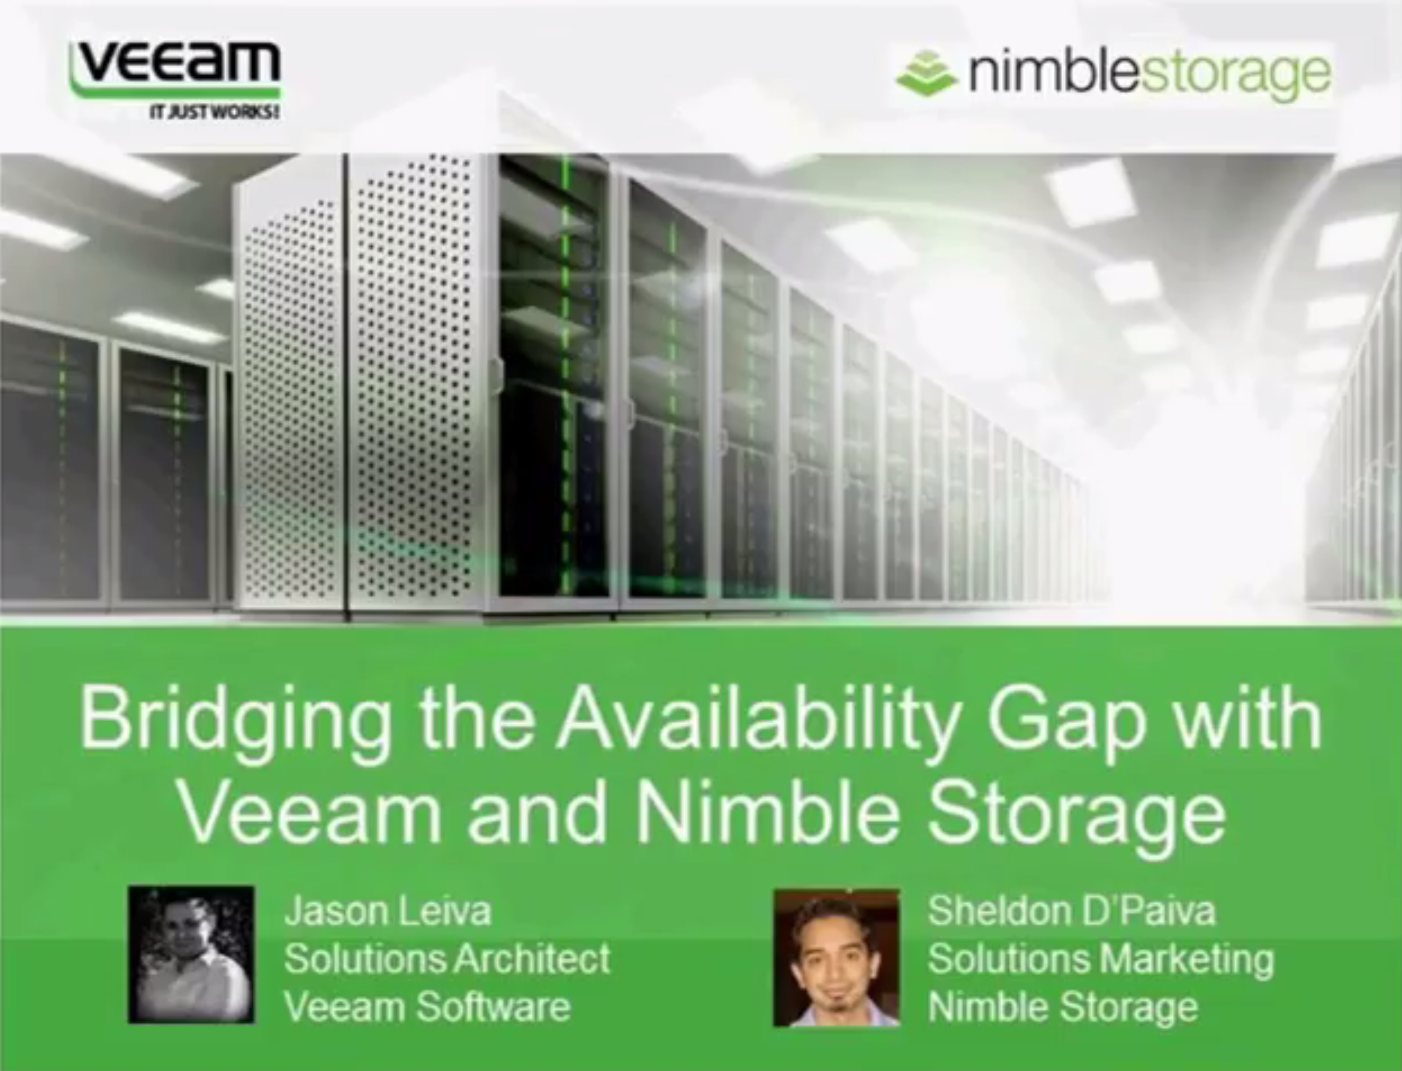 Bridging the availability gap with Veeam and Nimble